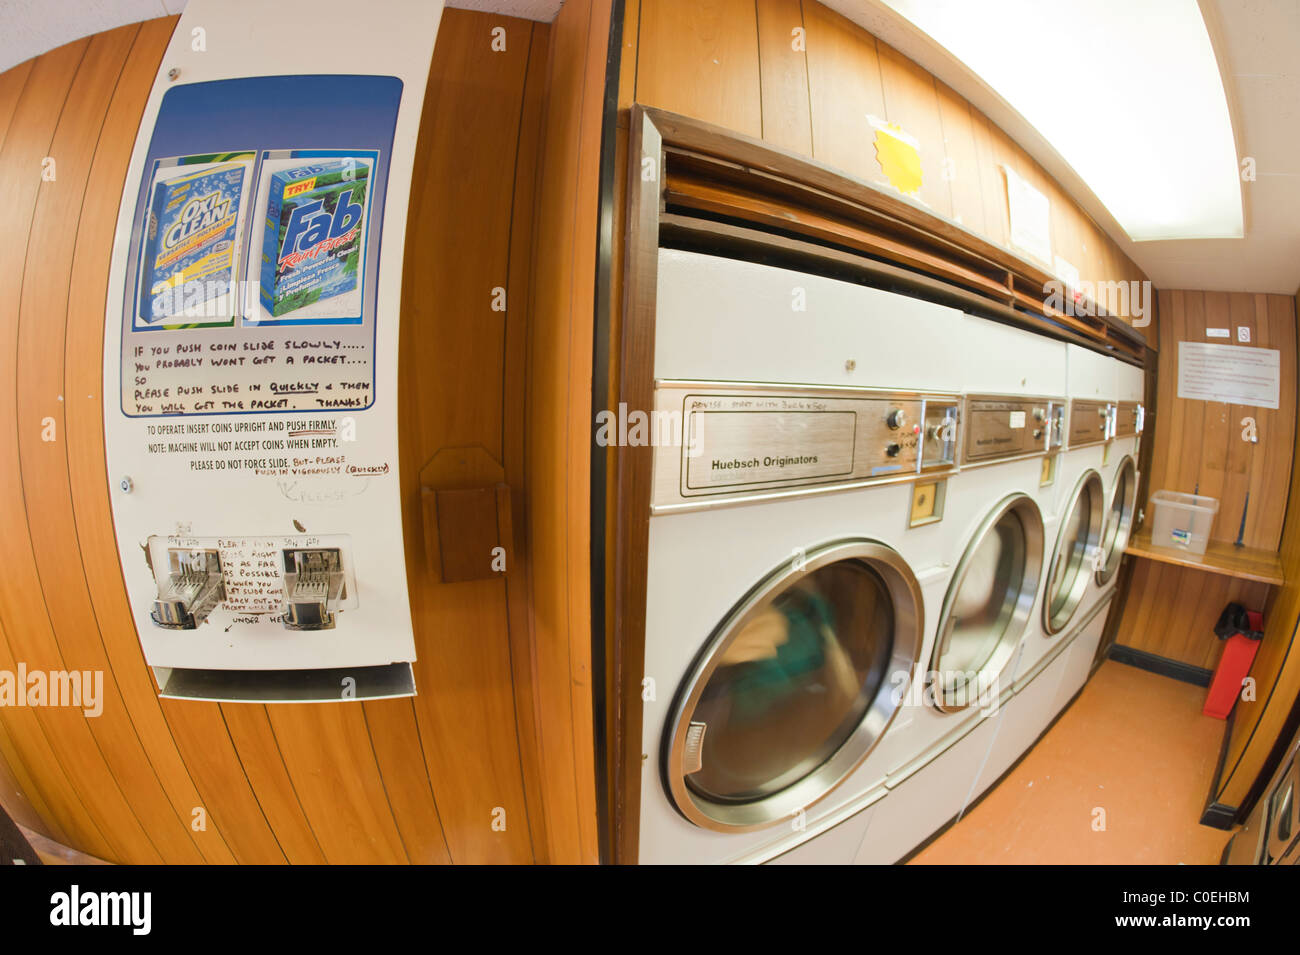 A washing powder vending machine in a laundrette with commercial driers showing movement as they spin in the background - Stock Image